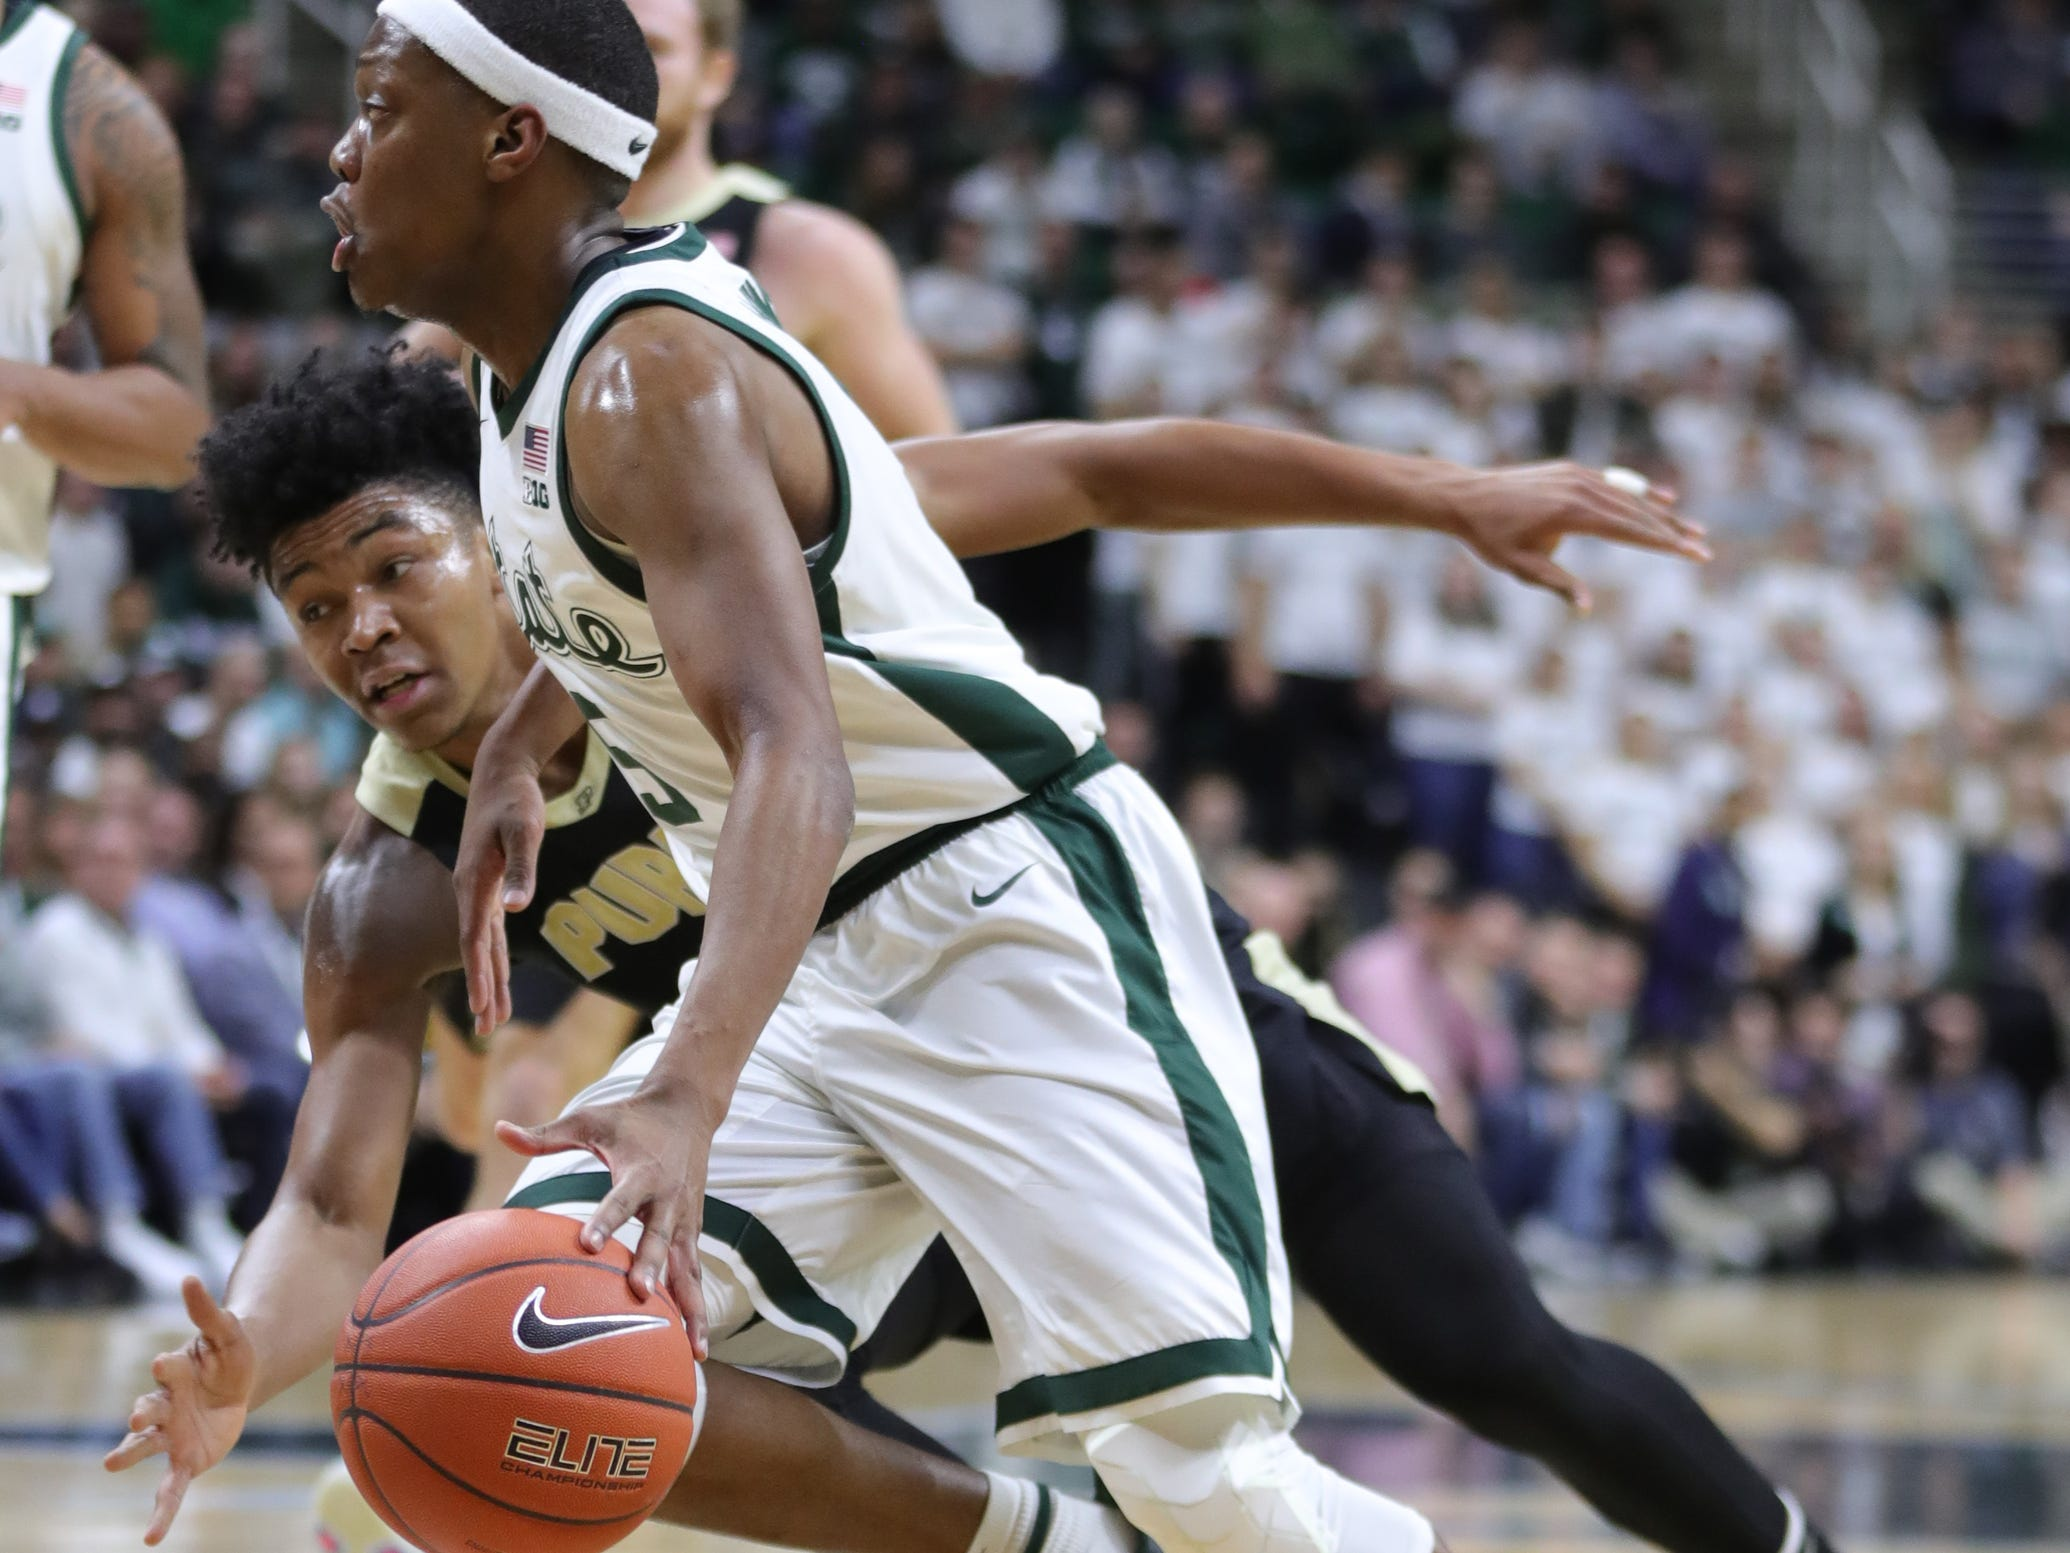 Michigan State guard Cassius Winston drives by Purdue guard Nojel Winston during first half action Tuesday, Jan. 8, 2019 at the Breslin Center in East Lansing, Mich.